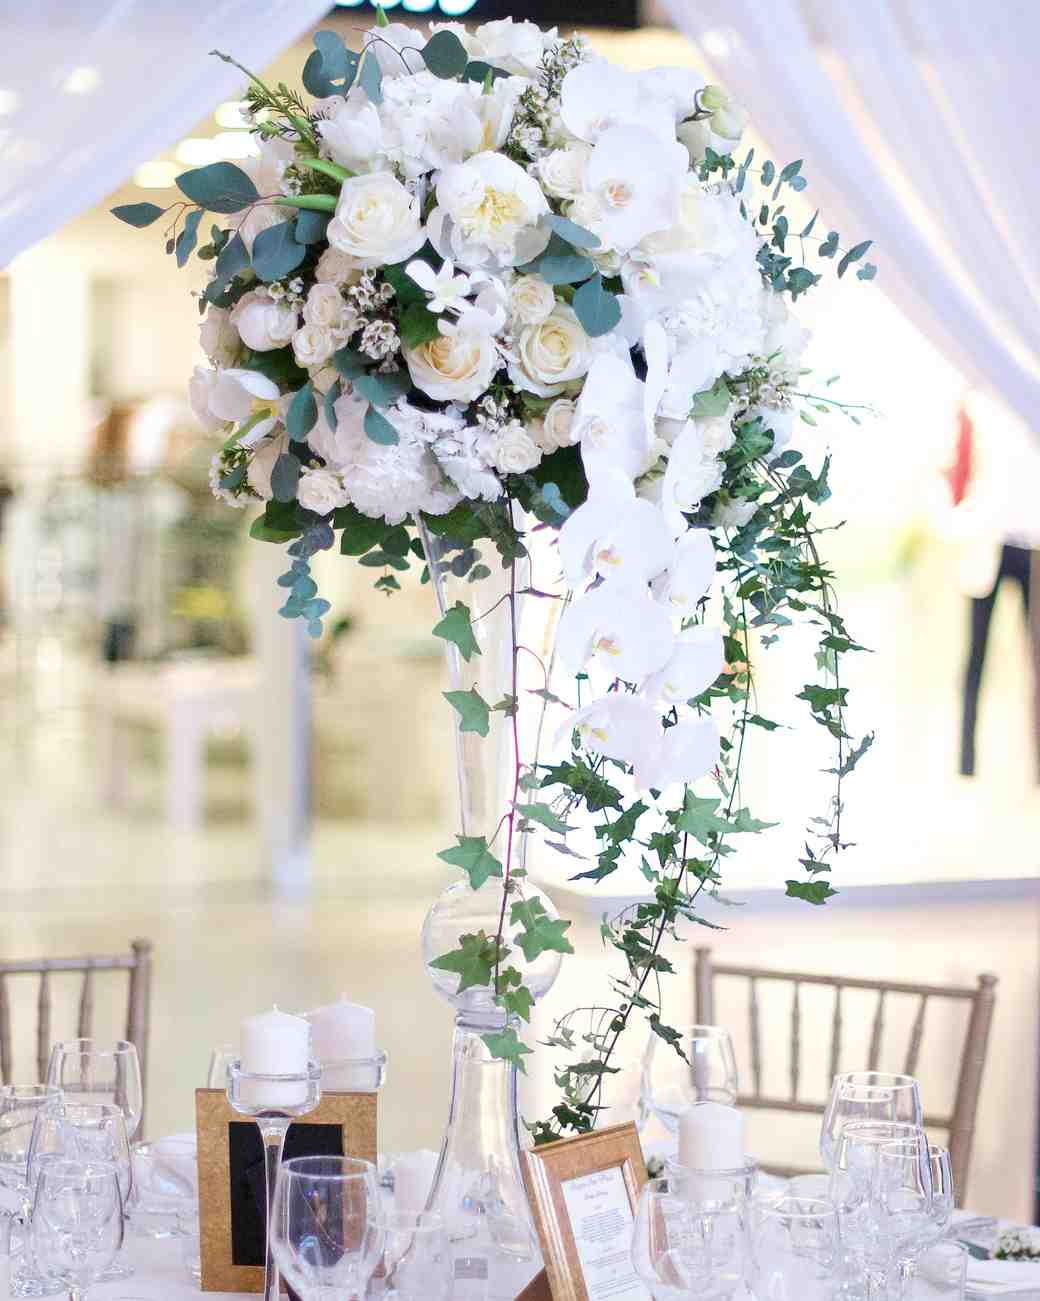 29 Tall Centerpieces That Will Take Your Reception Tables To New Heights Martha Stewart Weddings: High Centerpiece Wedding Rings At Websimilar.org